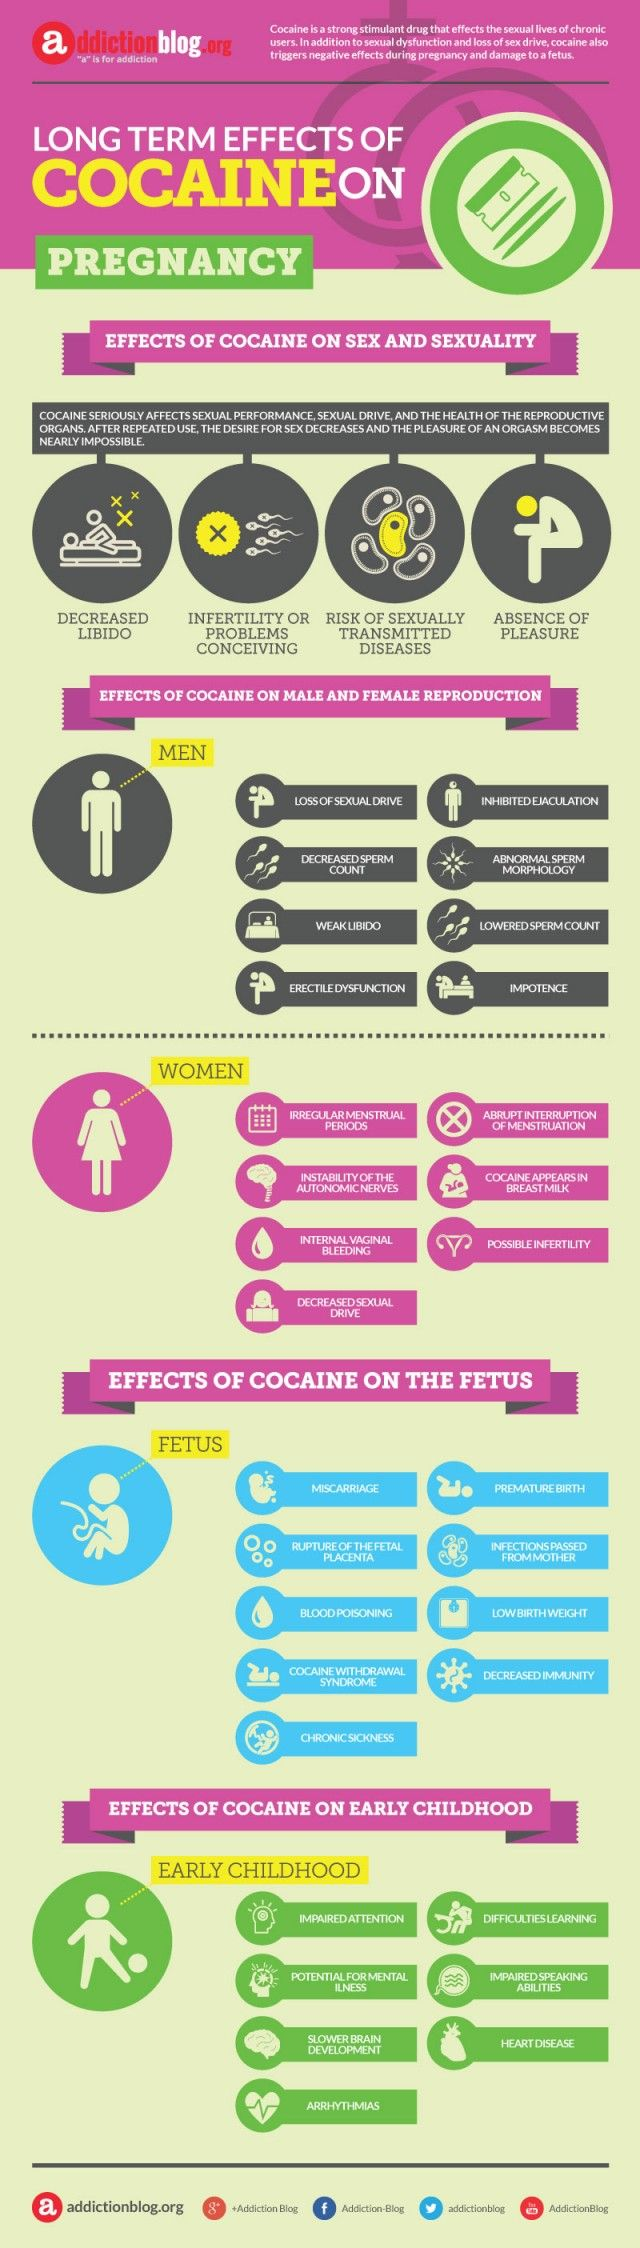 Effects of cocaine on sex